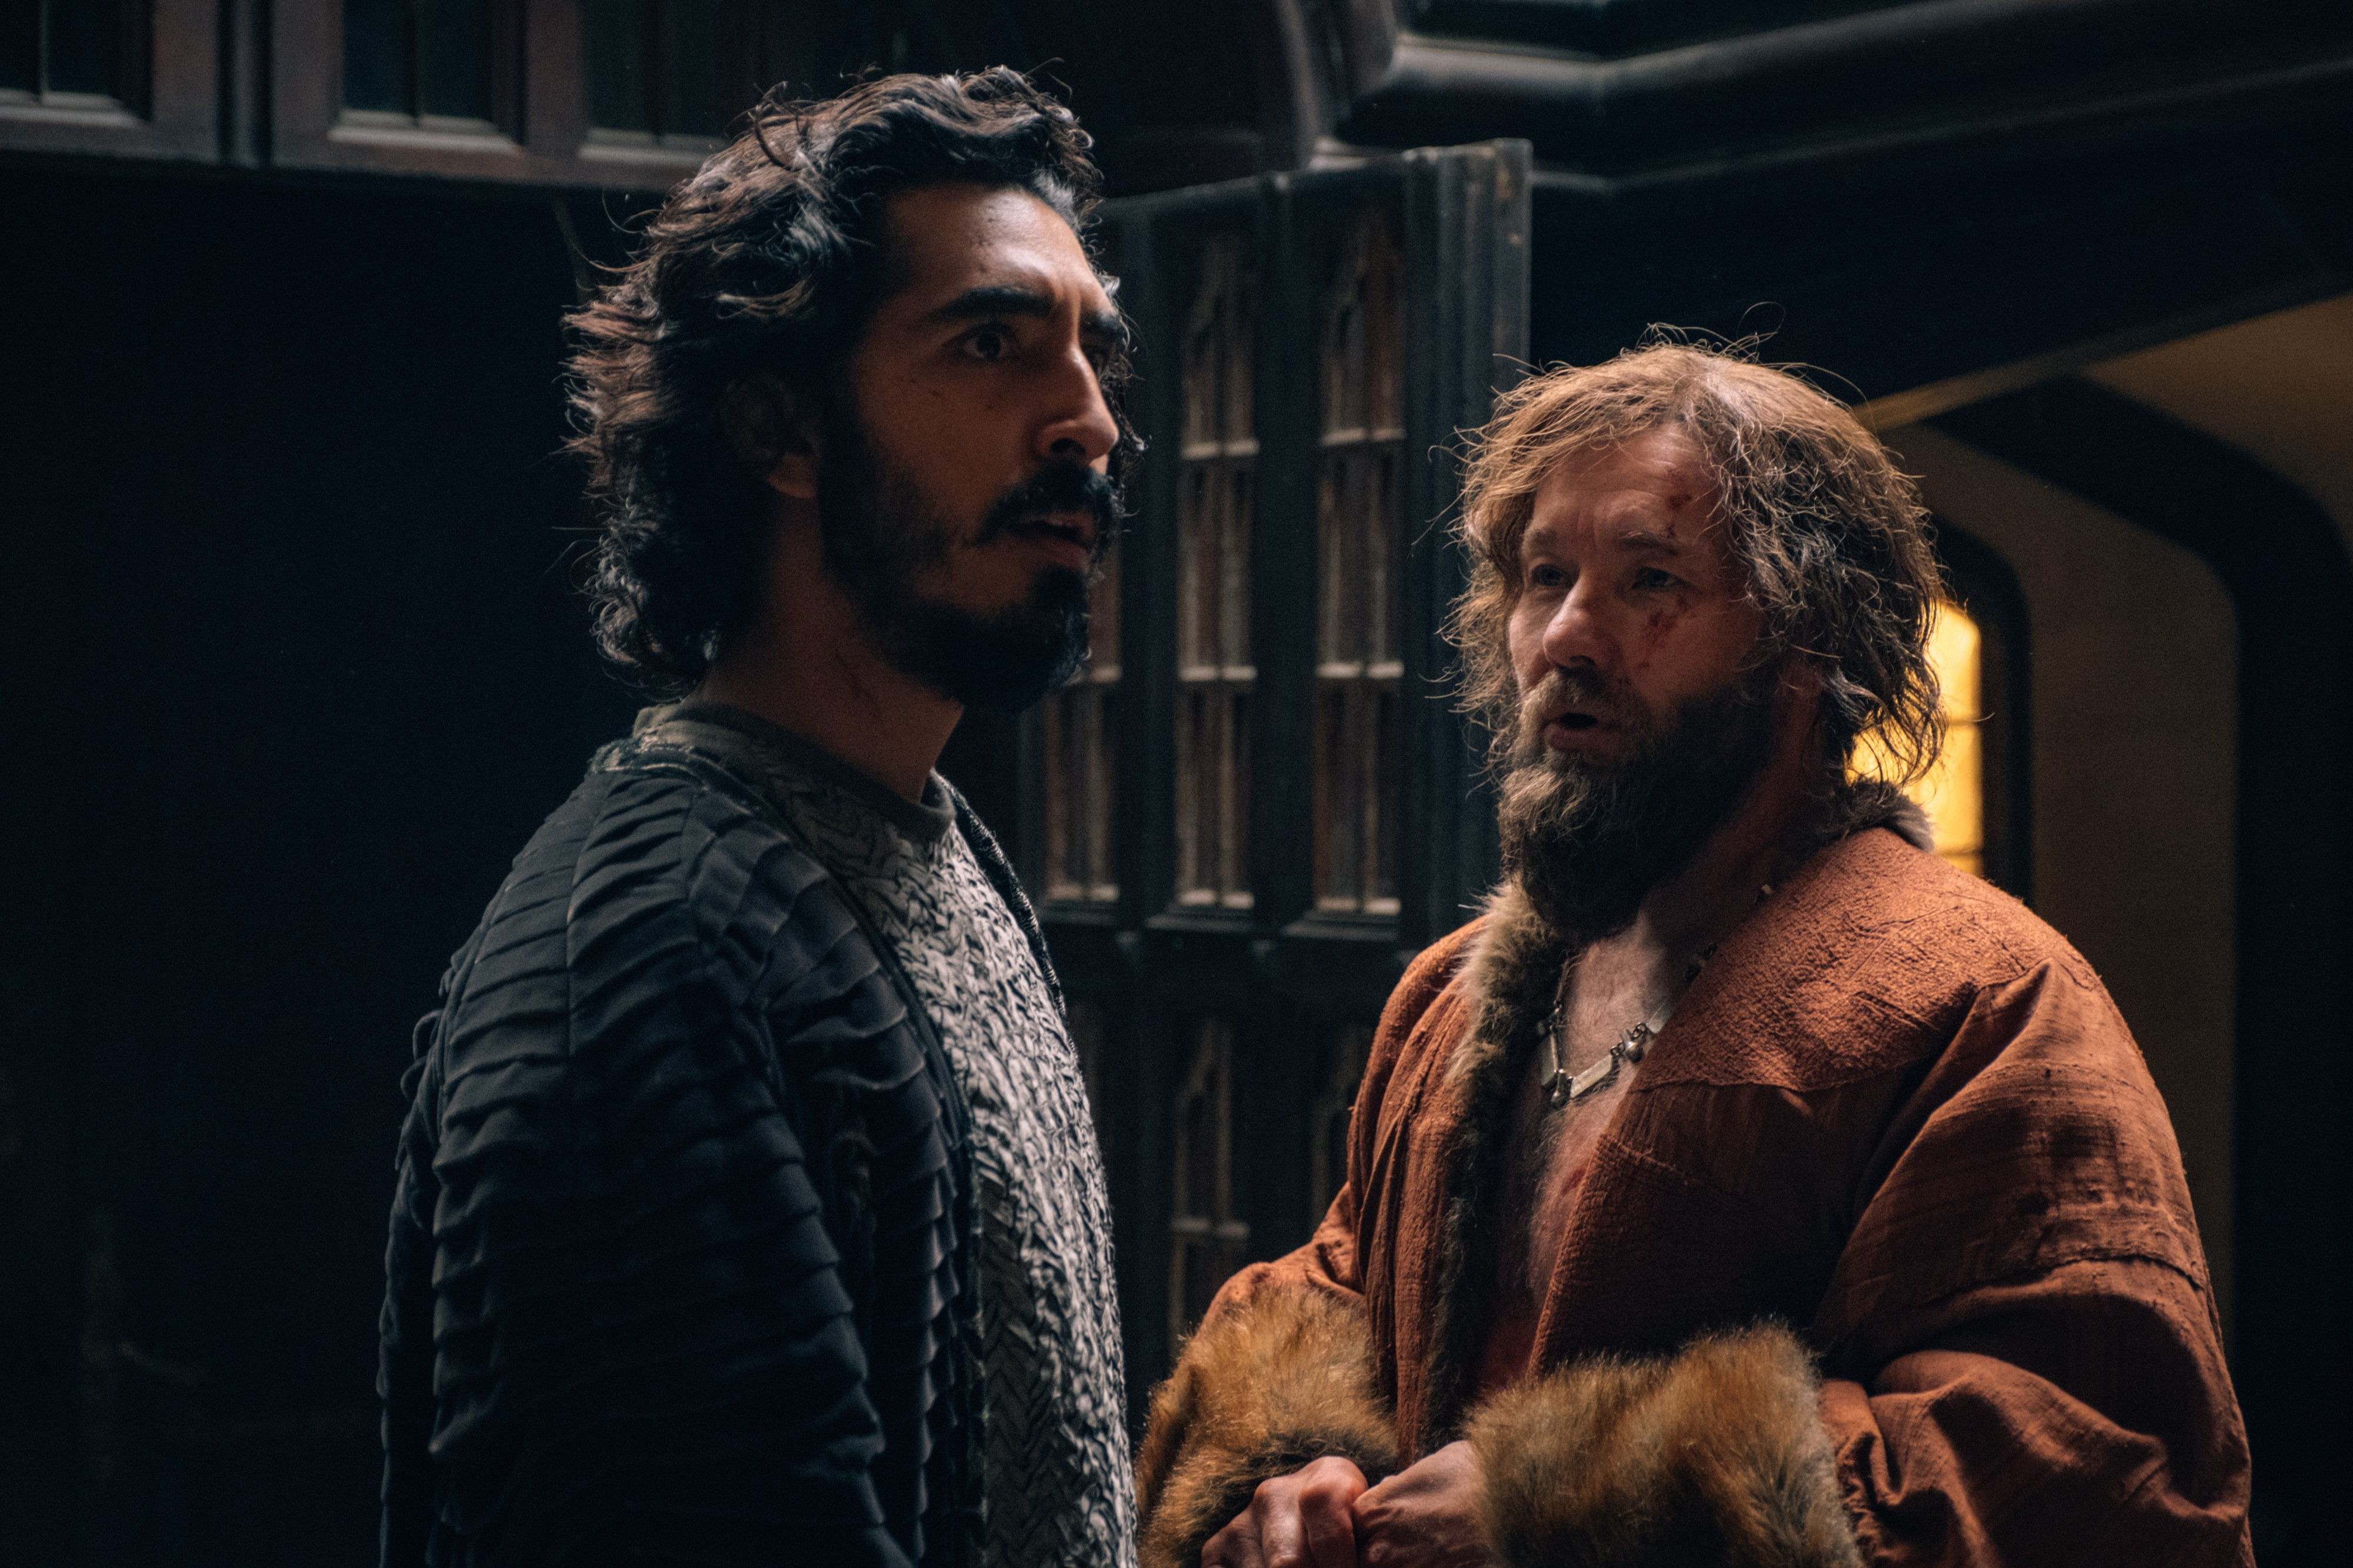 Dev Patel is hit on by a polyamorous lord, played by Joel Edgerton.